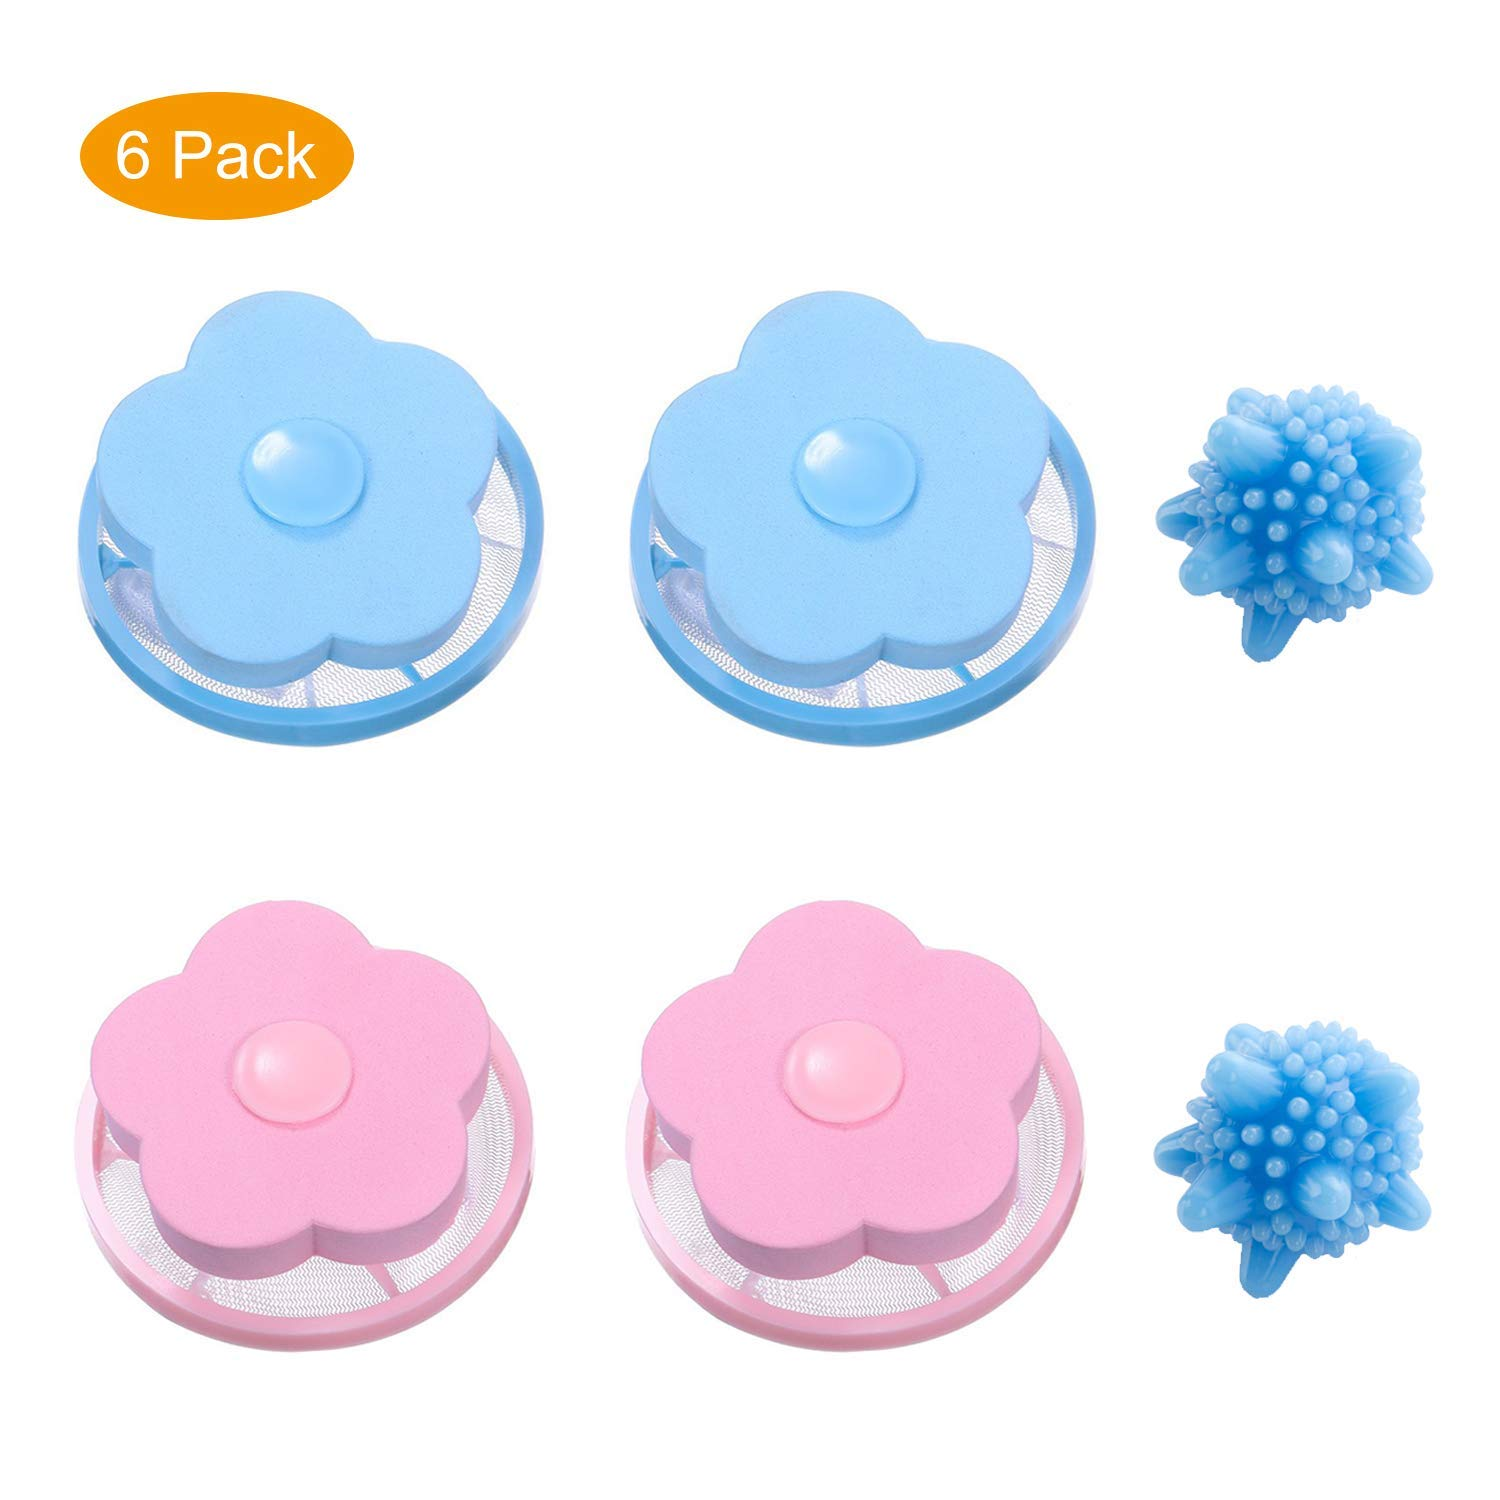 Pet Fur Remover Hair Catcher Pouch Flower Floating lint mesh Bag Reusable Washing Machine Filter net lint Trap with Laundry Ball (Pink,Blue and Ball)